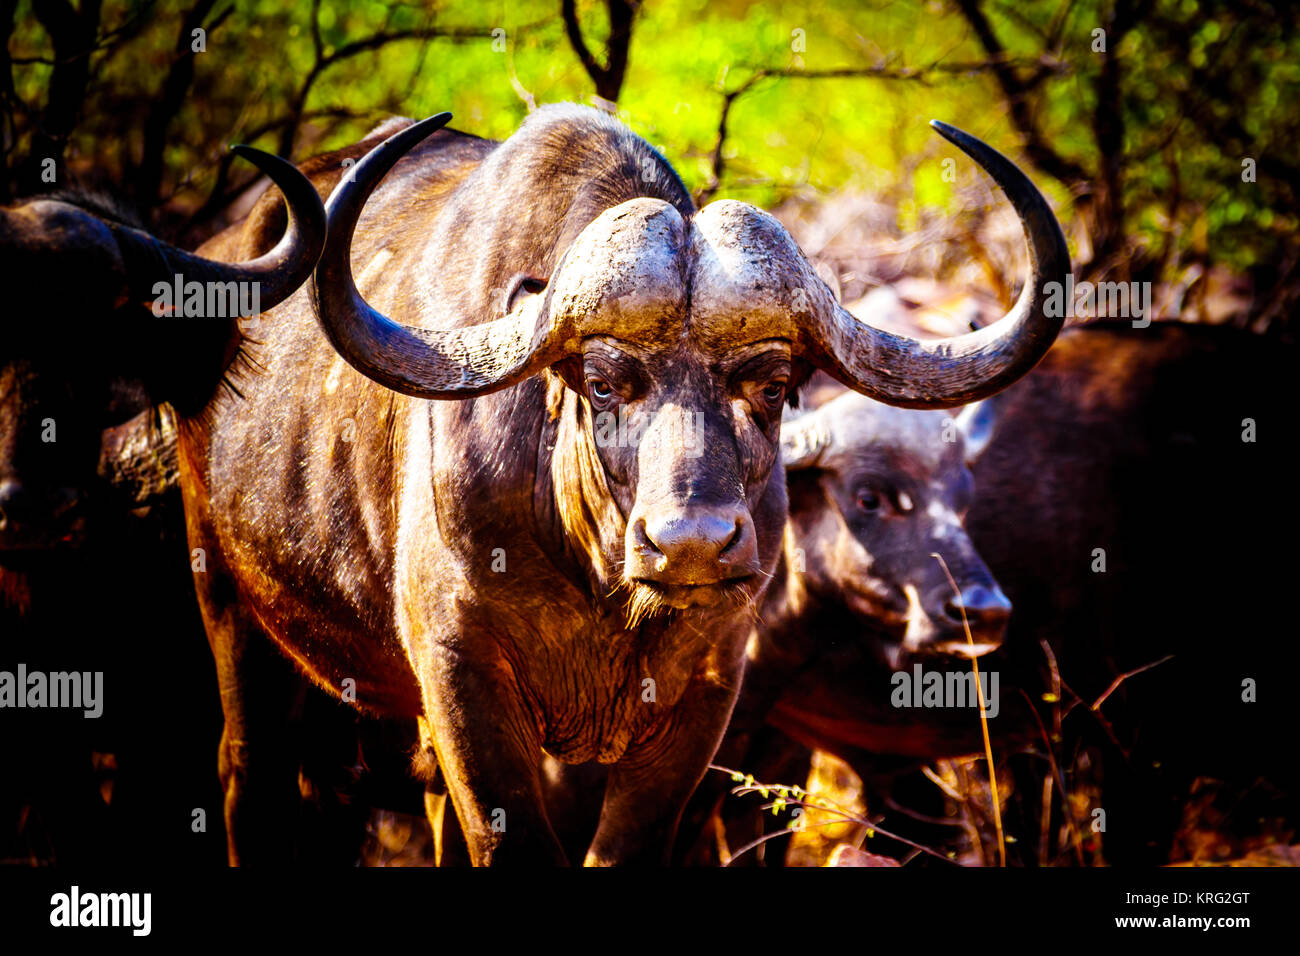 Closeup Portrait of a large Water Buffalo in Kruger National Park in South Africa - Stock Image